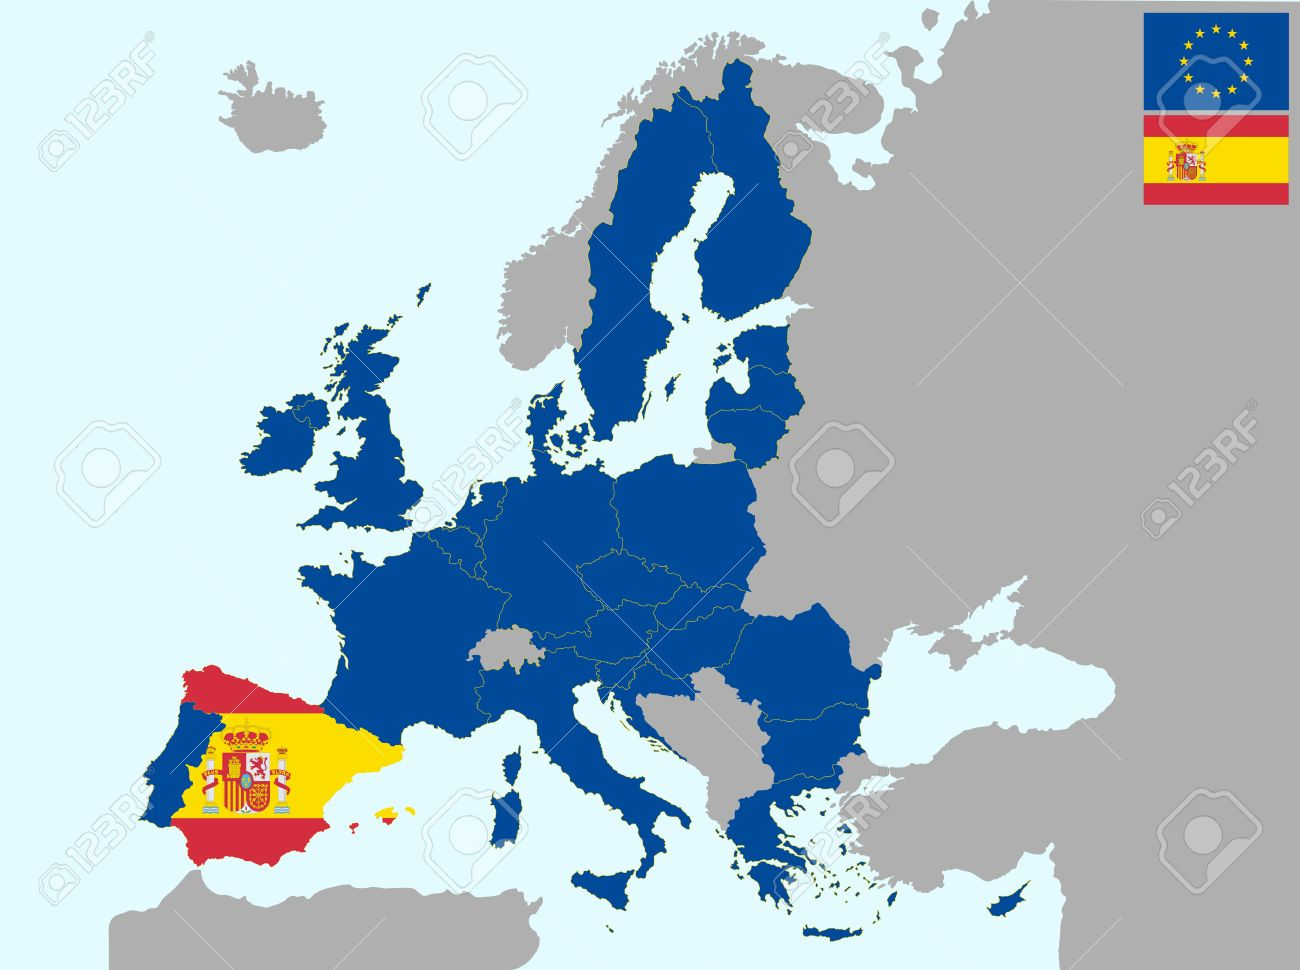 Spain Map Of Europe.Illustration Of Europe Map With Flag Of Spain From 1 July 2013